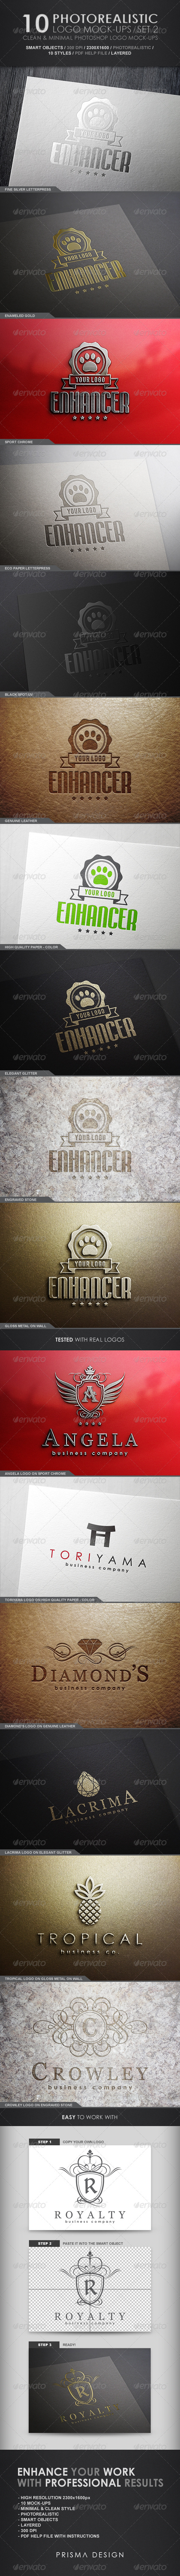 GraphicRiver 10 Photorealistic Logo Mock-Ups Set 2 4973414